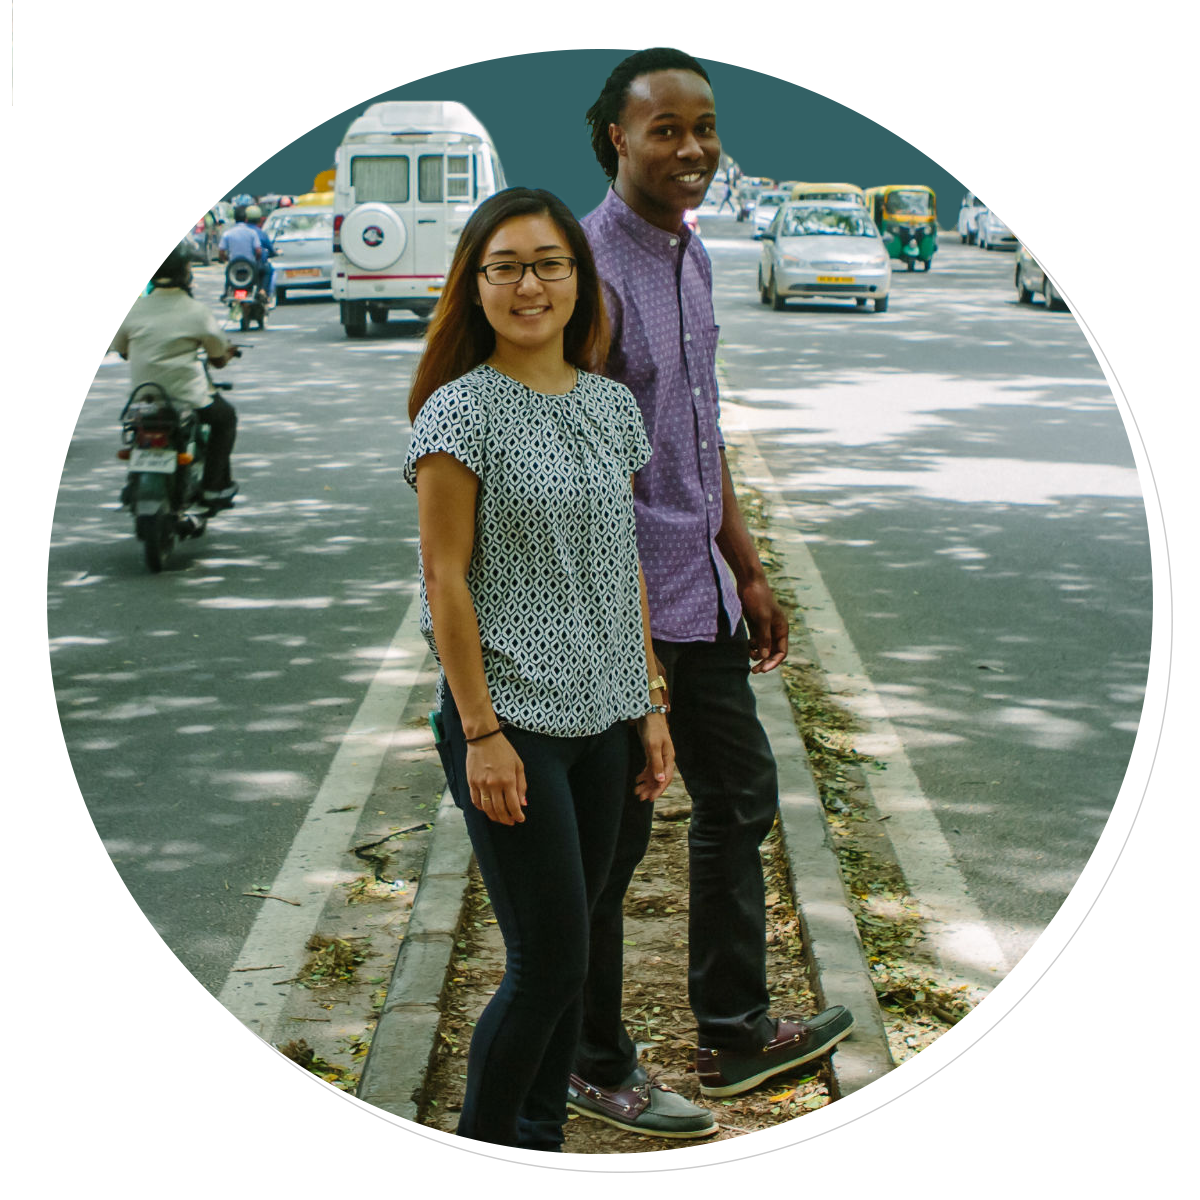 Two people stand in the median of a road